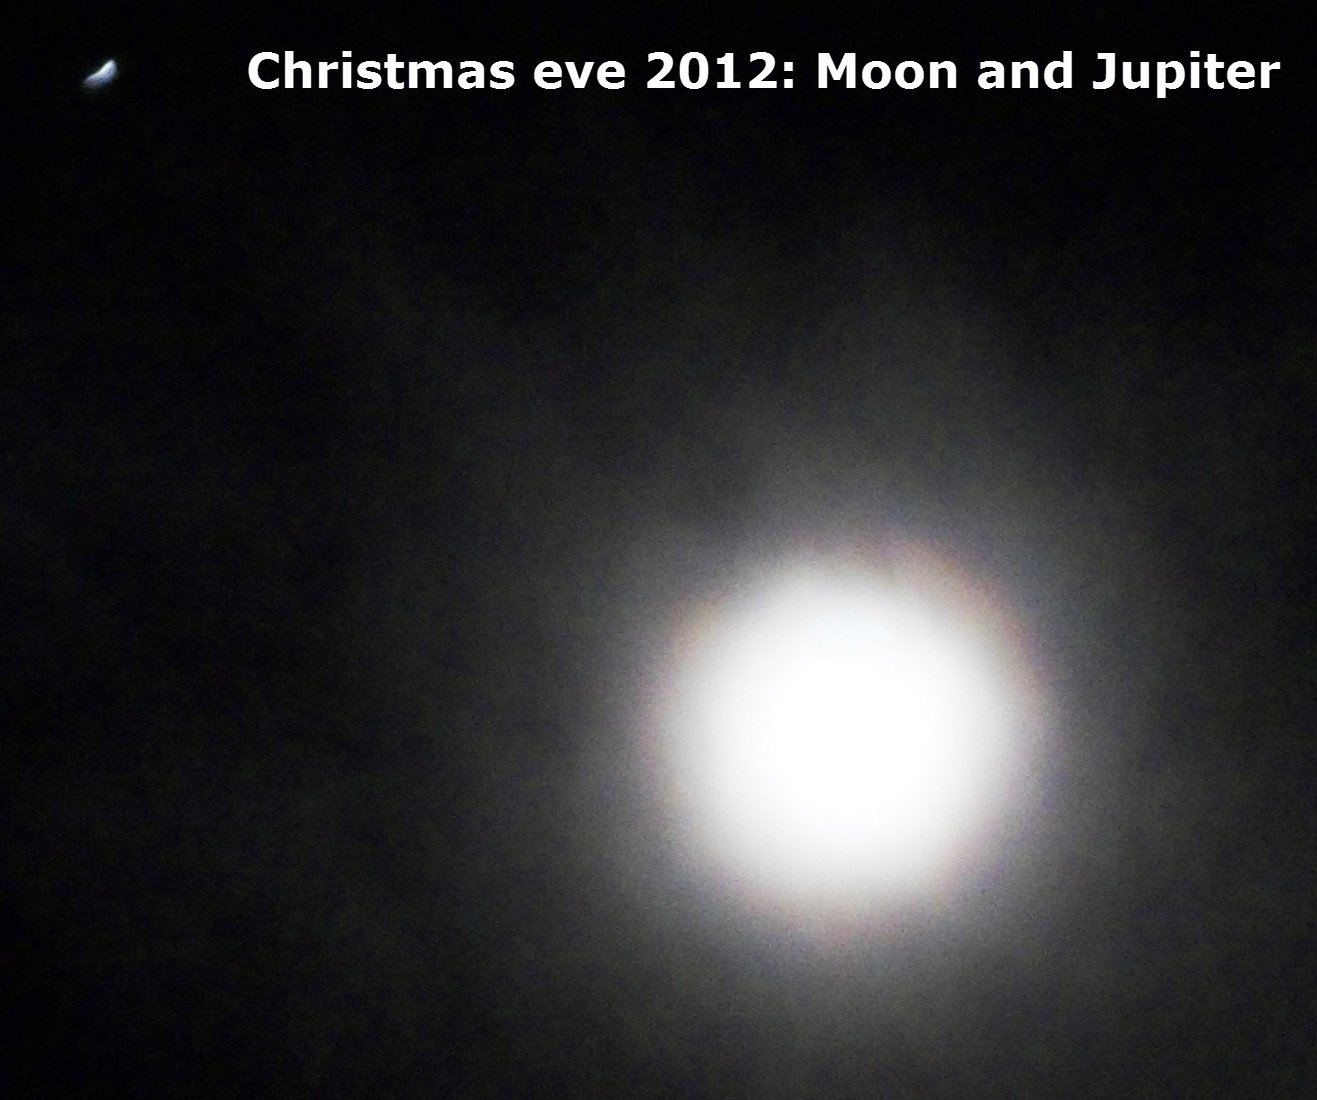 moon jupiter and its rings - photo #29